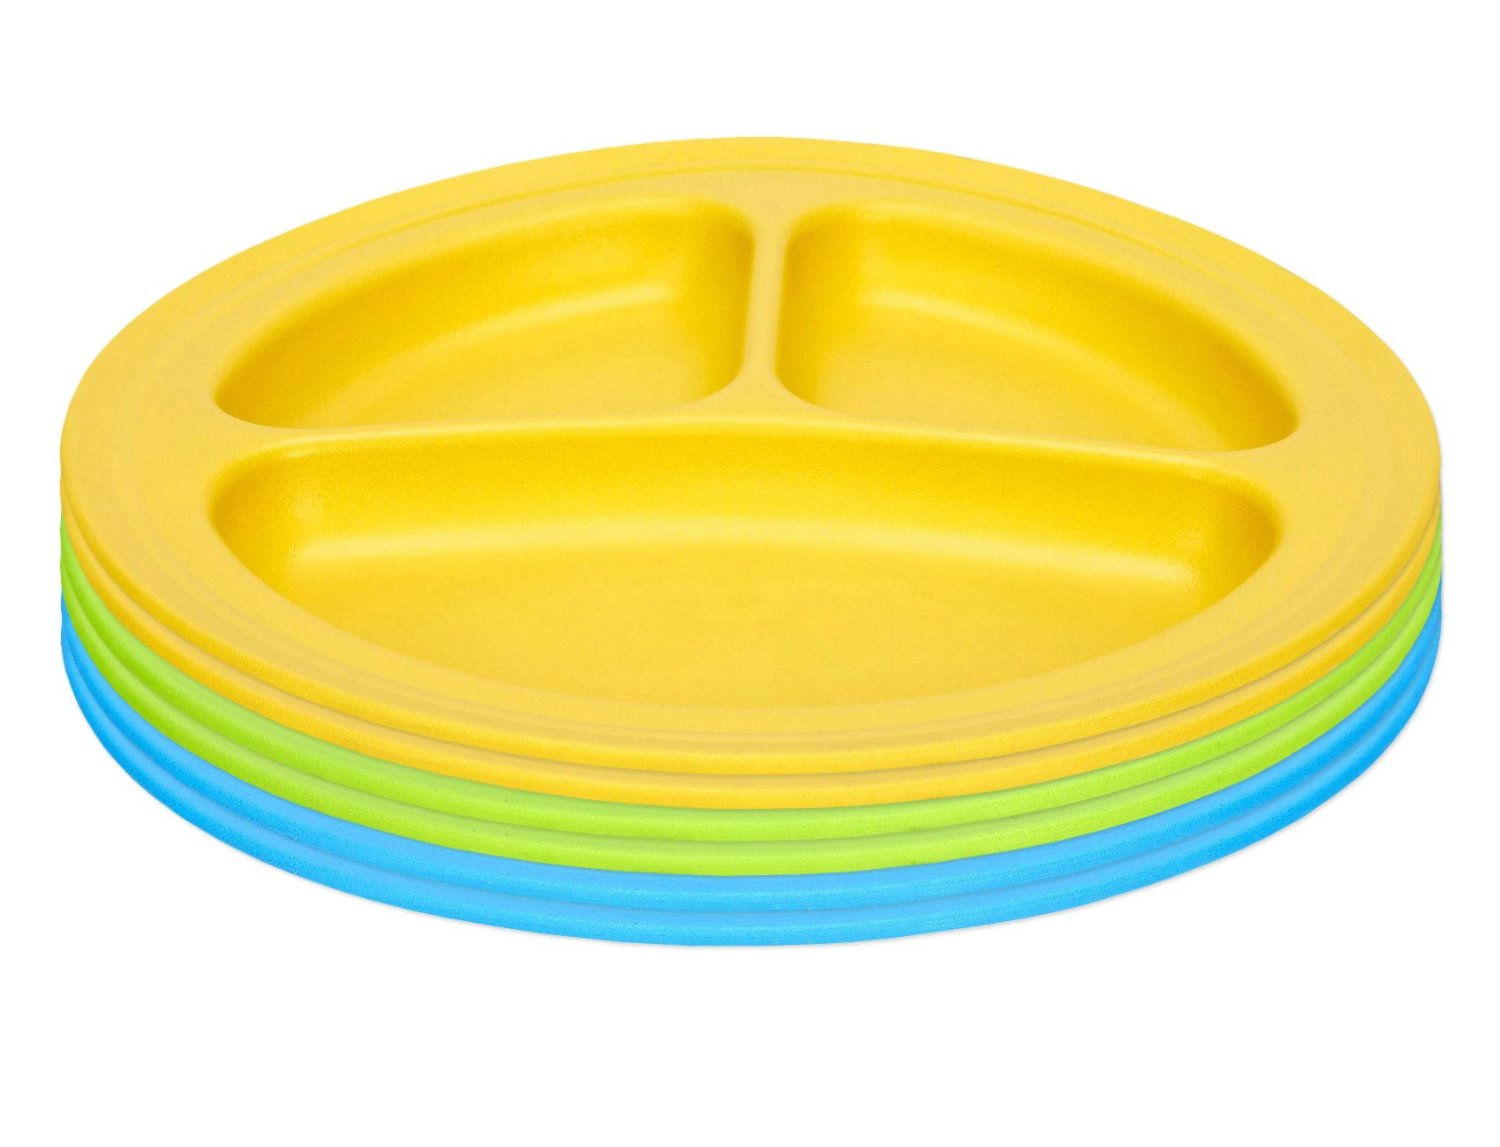 Green Eats Divided Feeding Plate, 6 Count, Blue Green Yellow by Green Eats